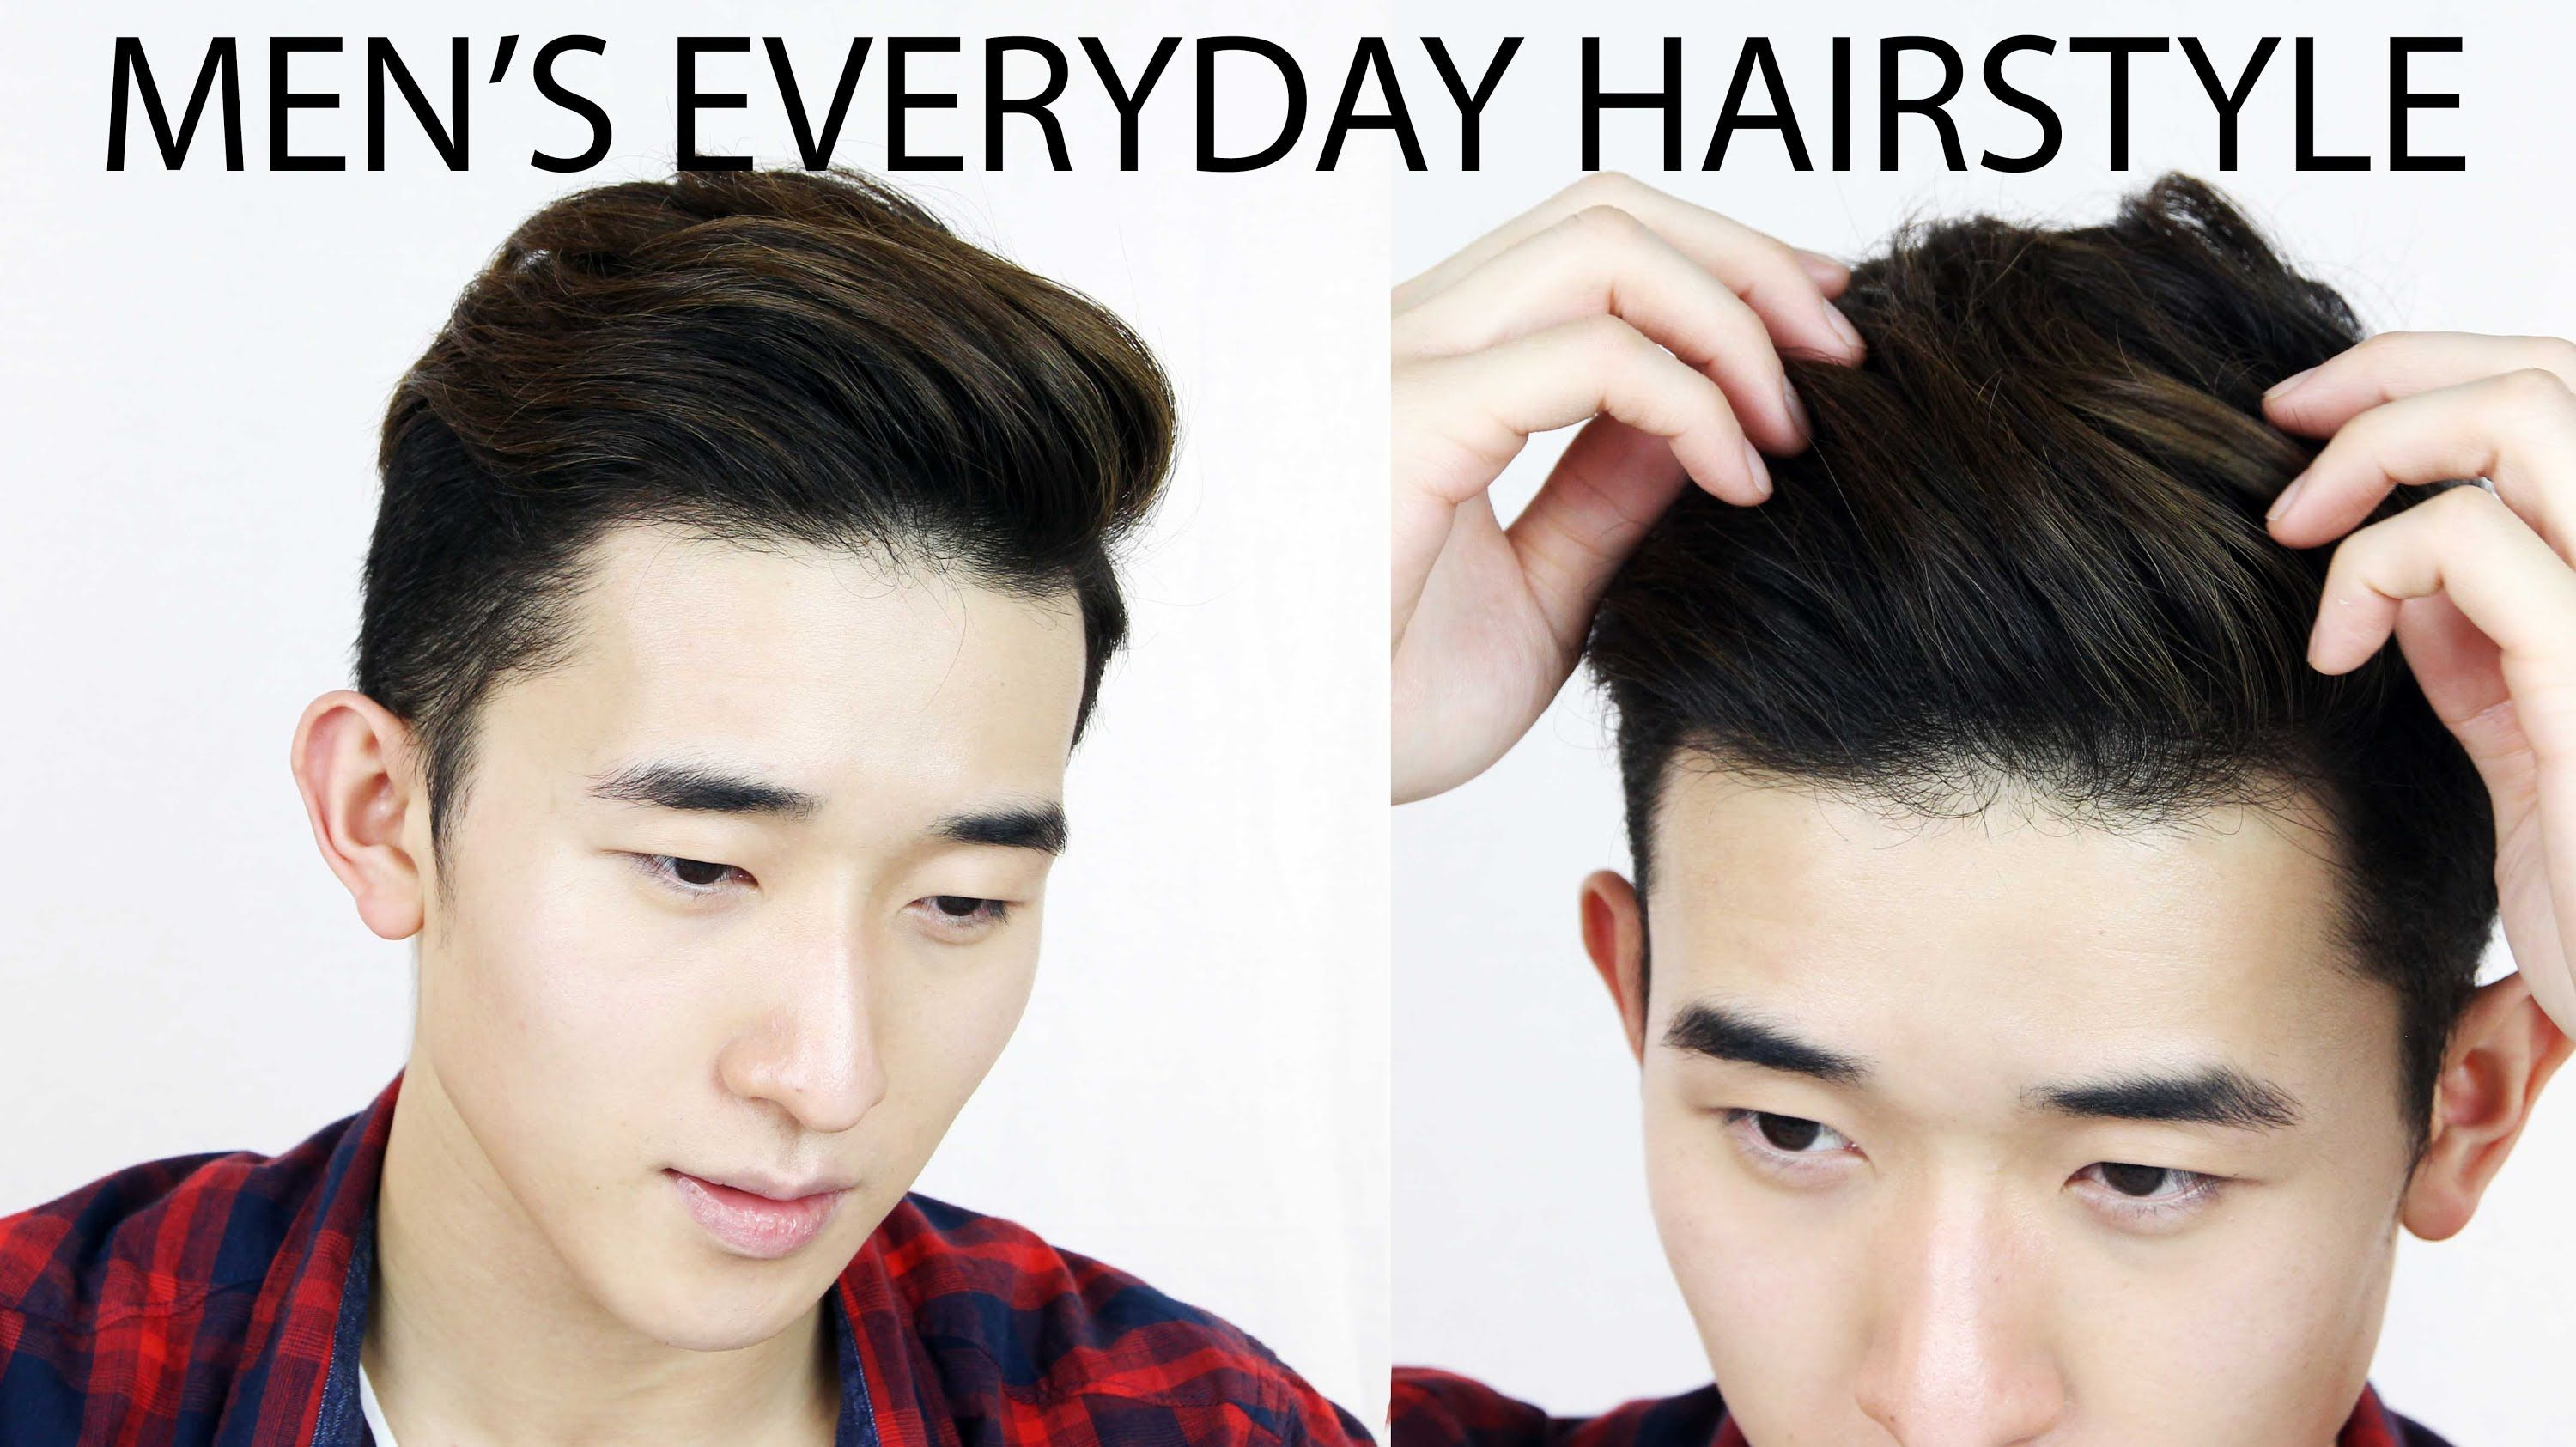 Men S Everyday Hairstyle Everyday Hairstyles Hairstyle Mens Hairstyles